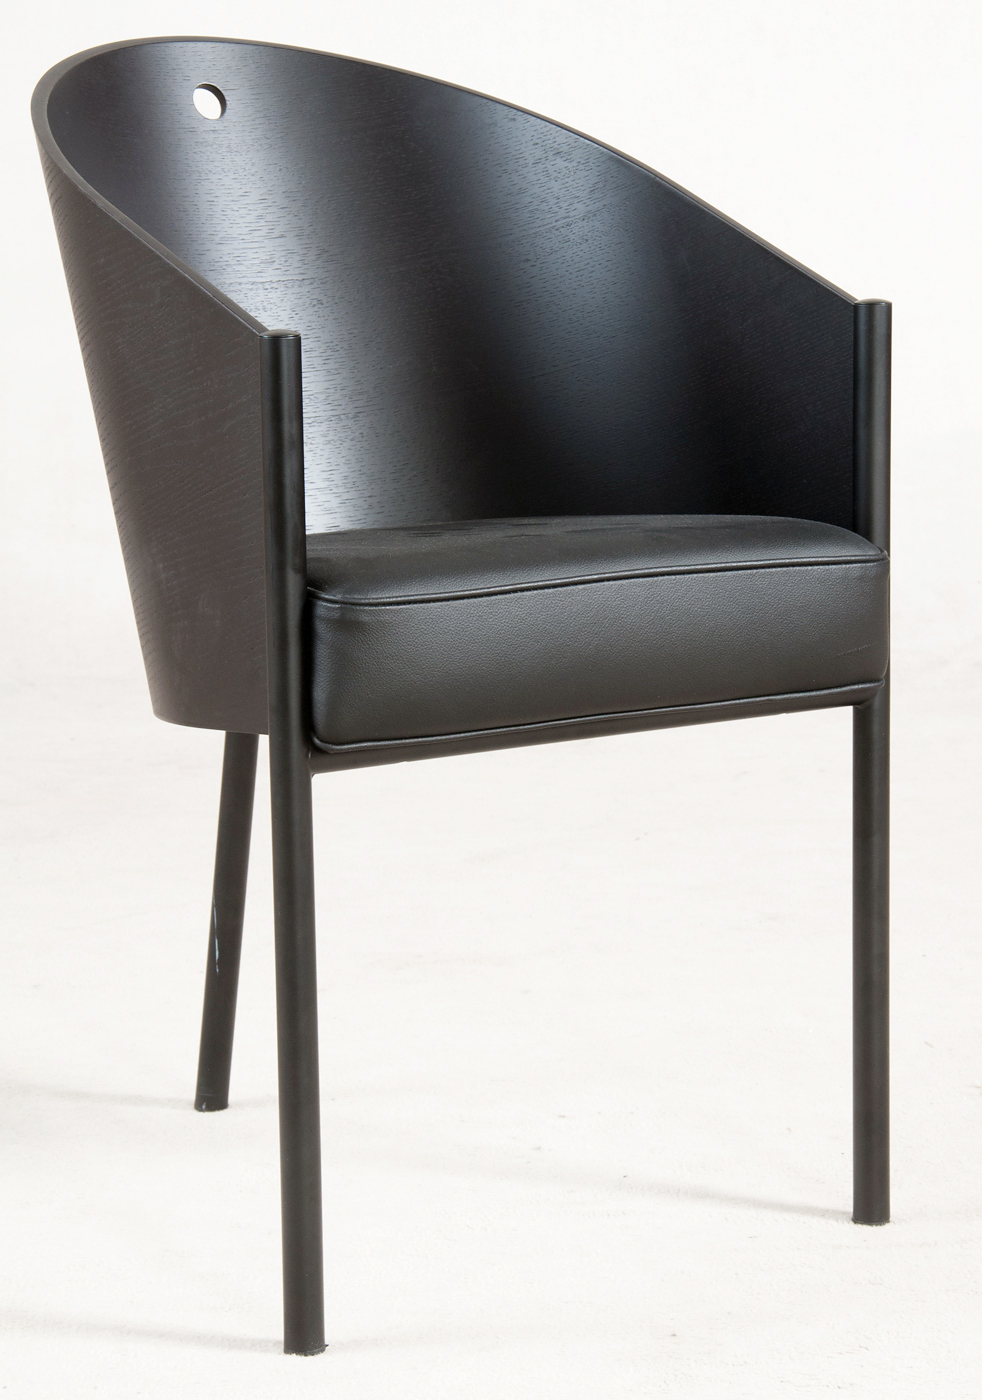 philippe starck stuhl philippe starck stuhl with philippe. Black Bedroom Furniture Sets. Home Design Ideas